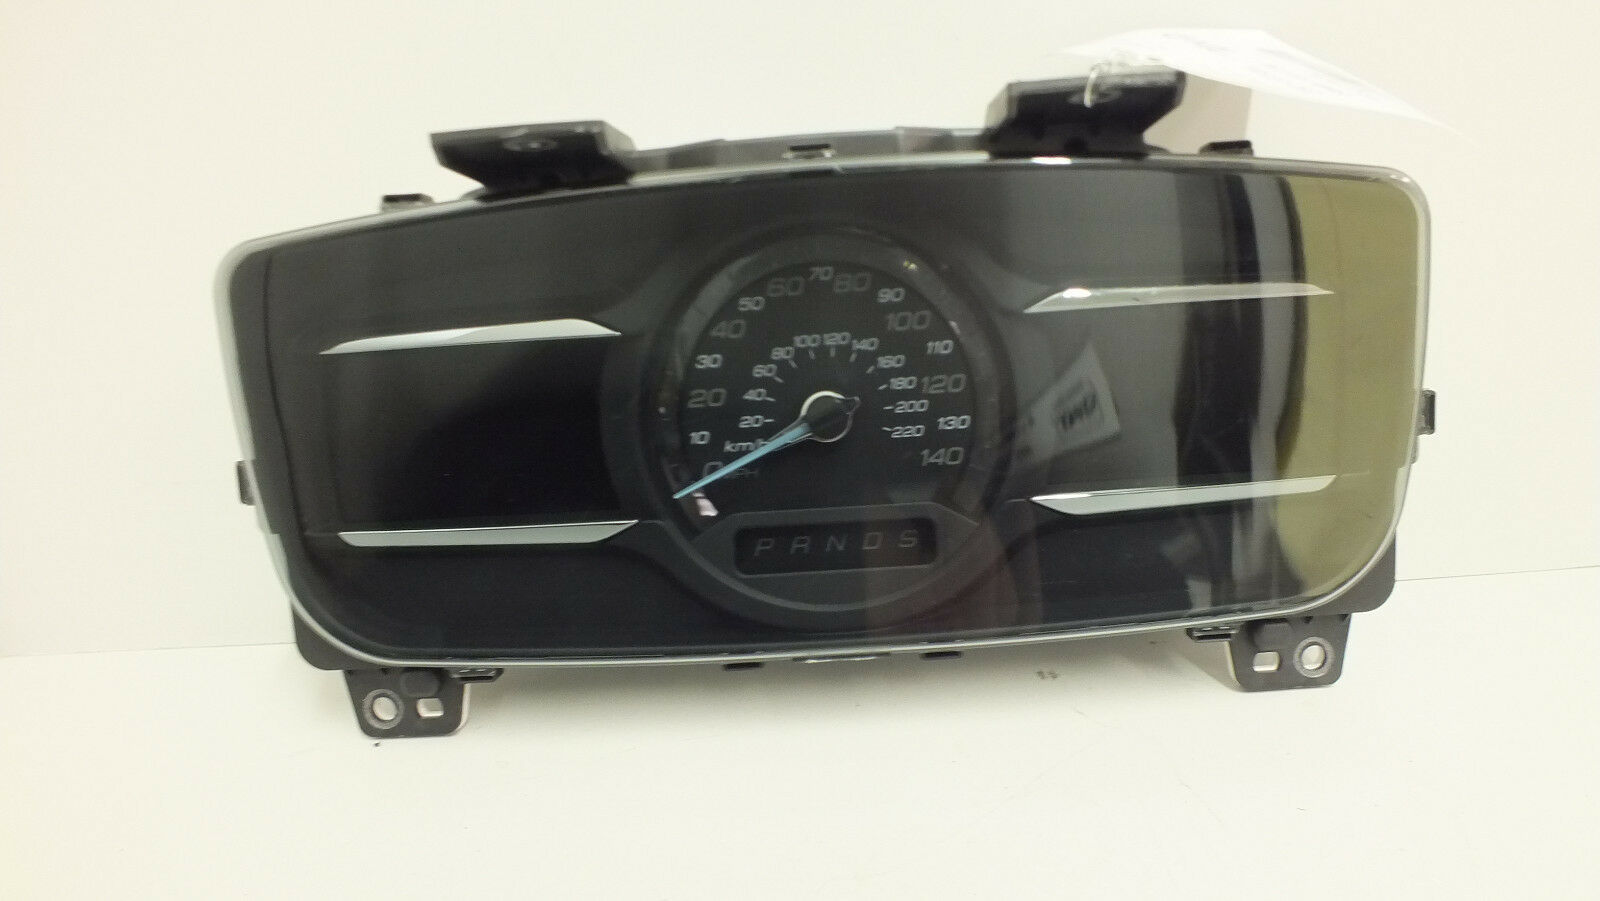 Primary image for 2013 FORD TAURUS SEL 3.5L AT INSTRUMENT CLUSTER DG1T-10849-AK (55k miles) #724D